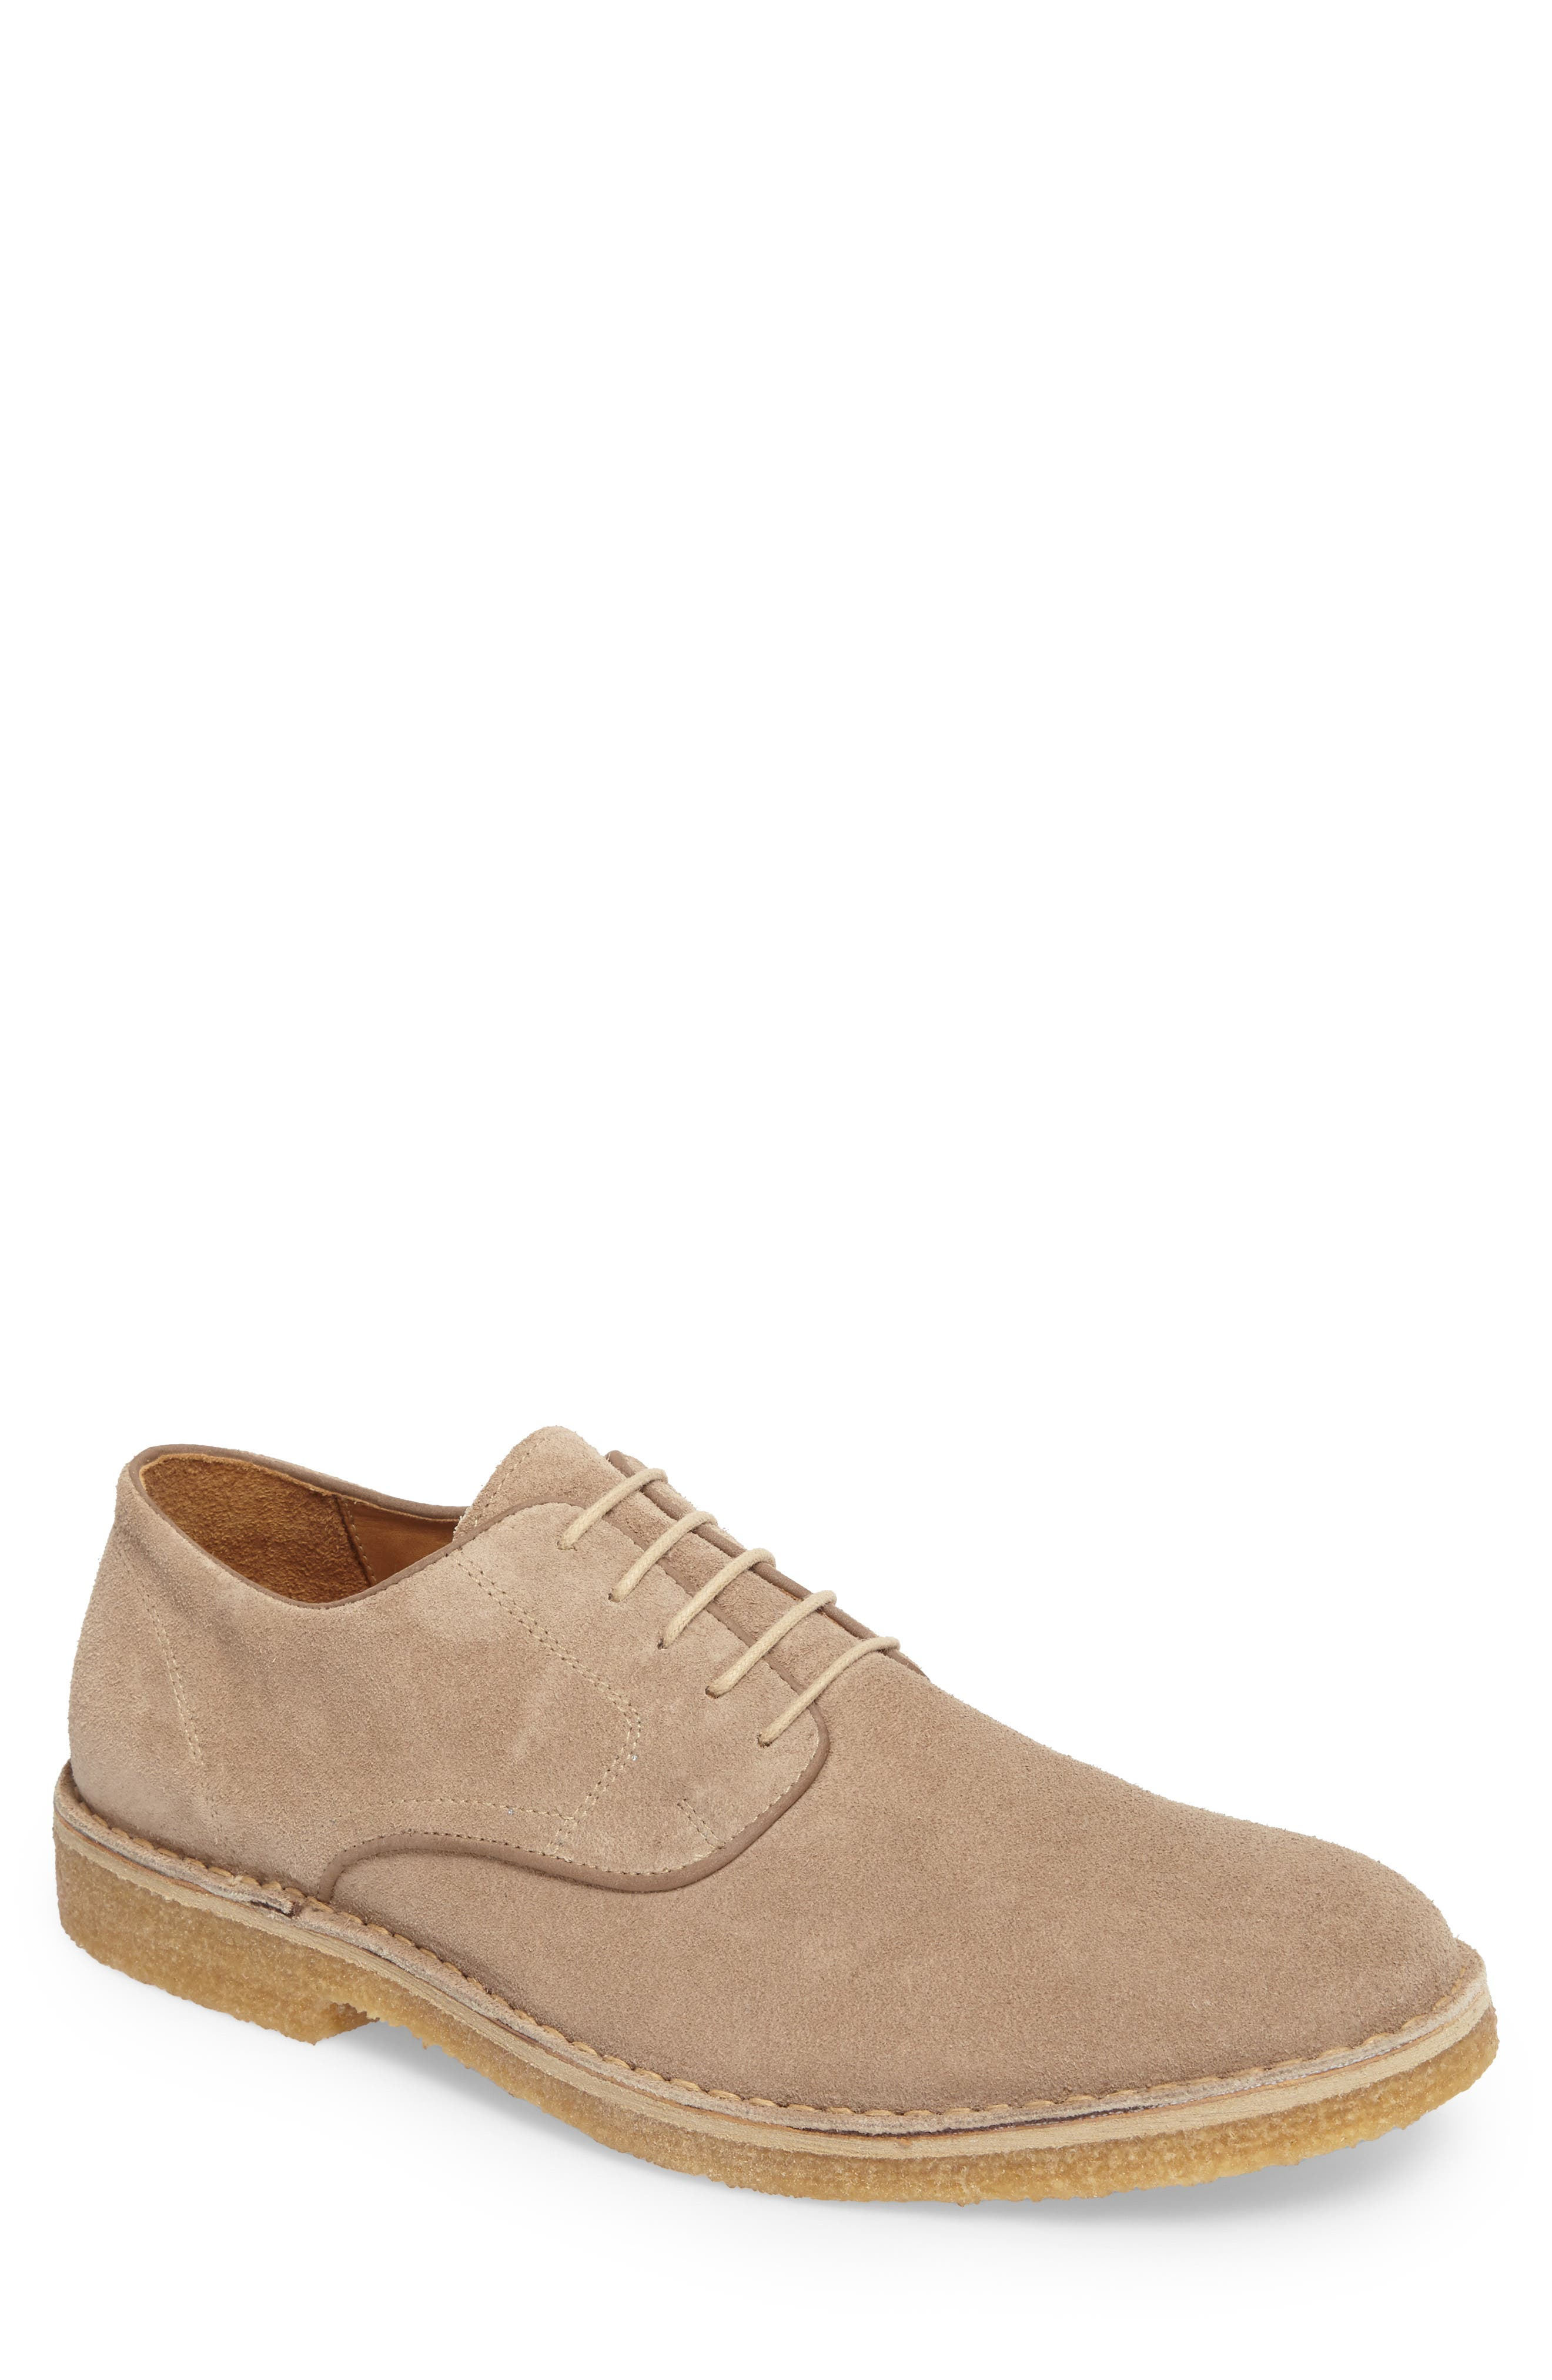 Crescent Buck Shoe,                             Main thumbnail 1, color,                             TAN SUEDE